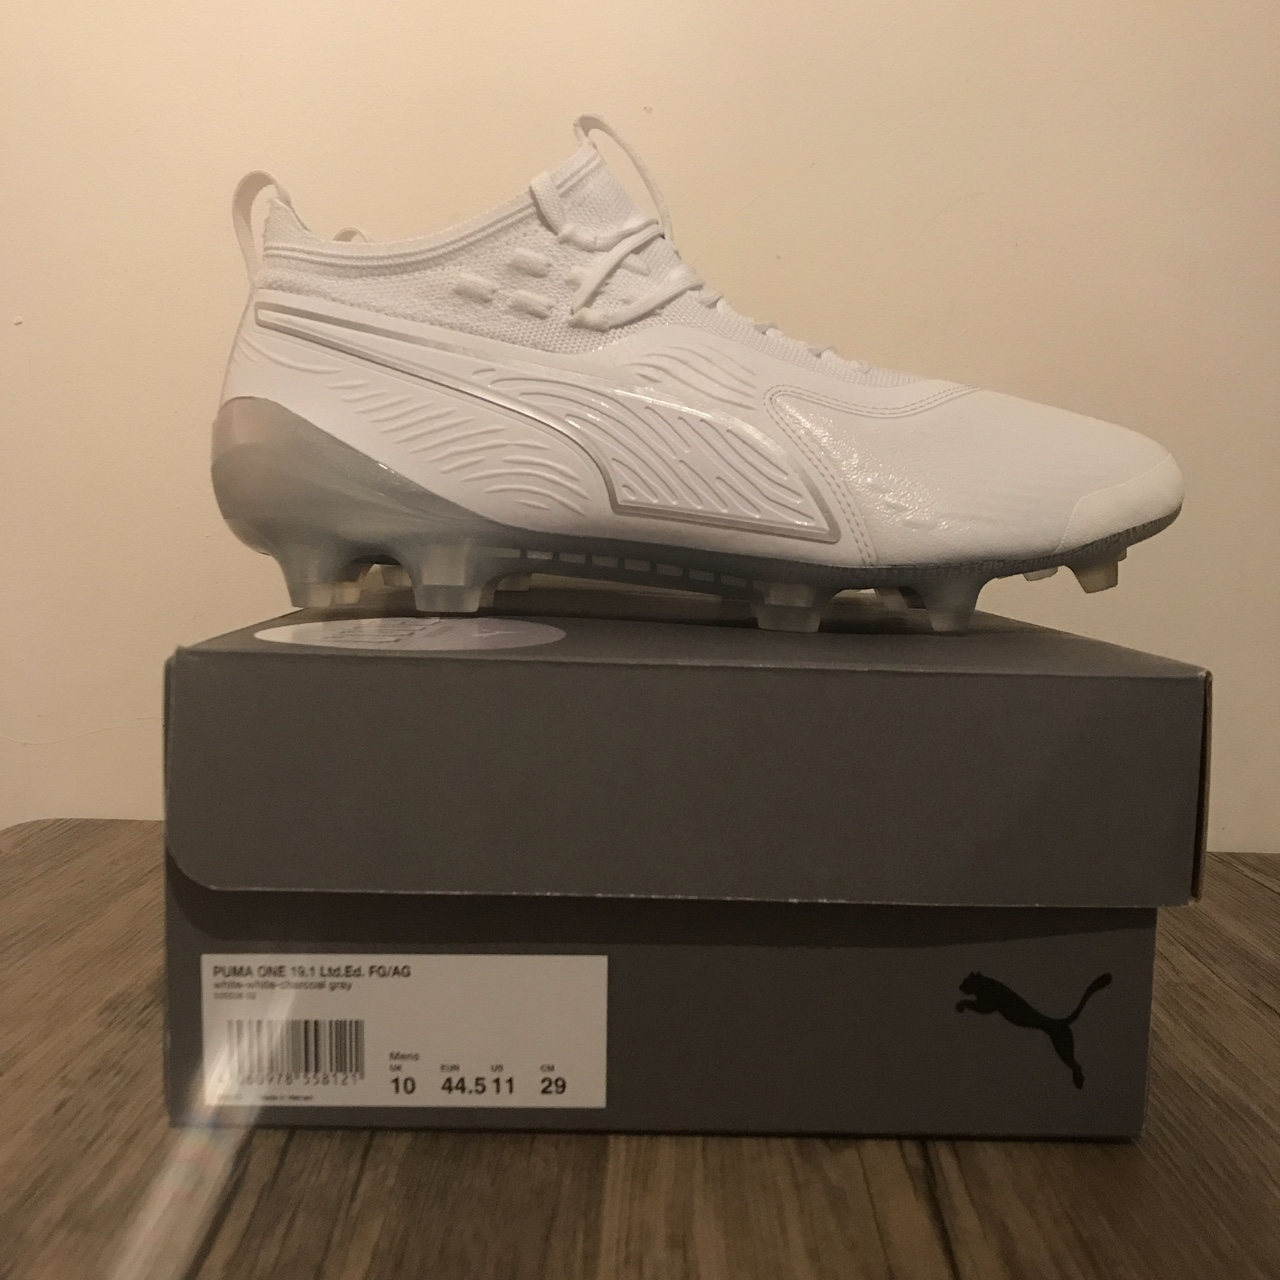 Brand new puma one 19.1 limited edition fg/ag for... - Depop